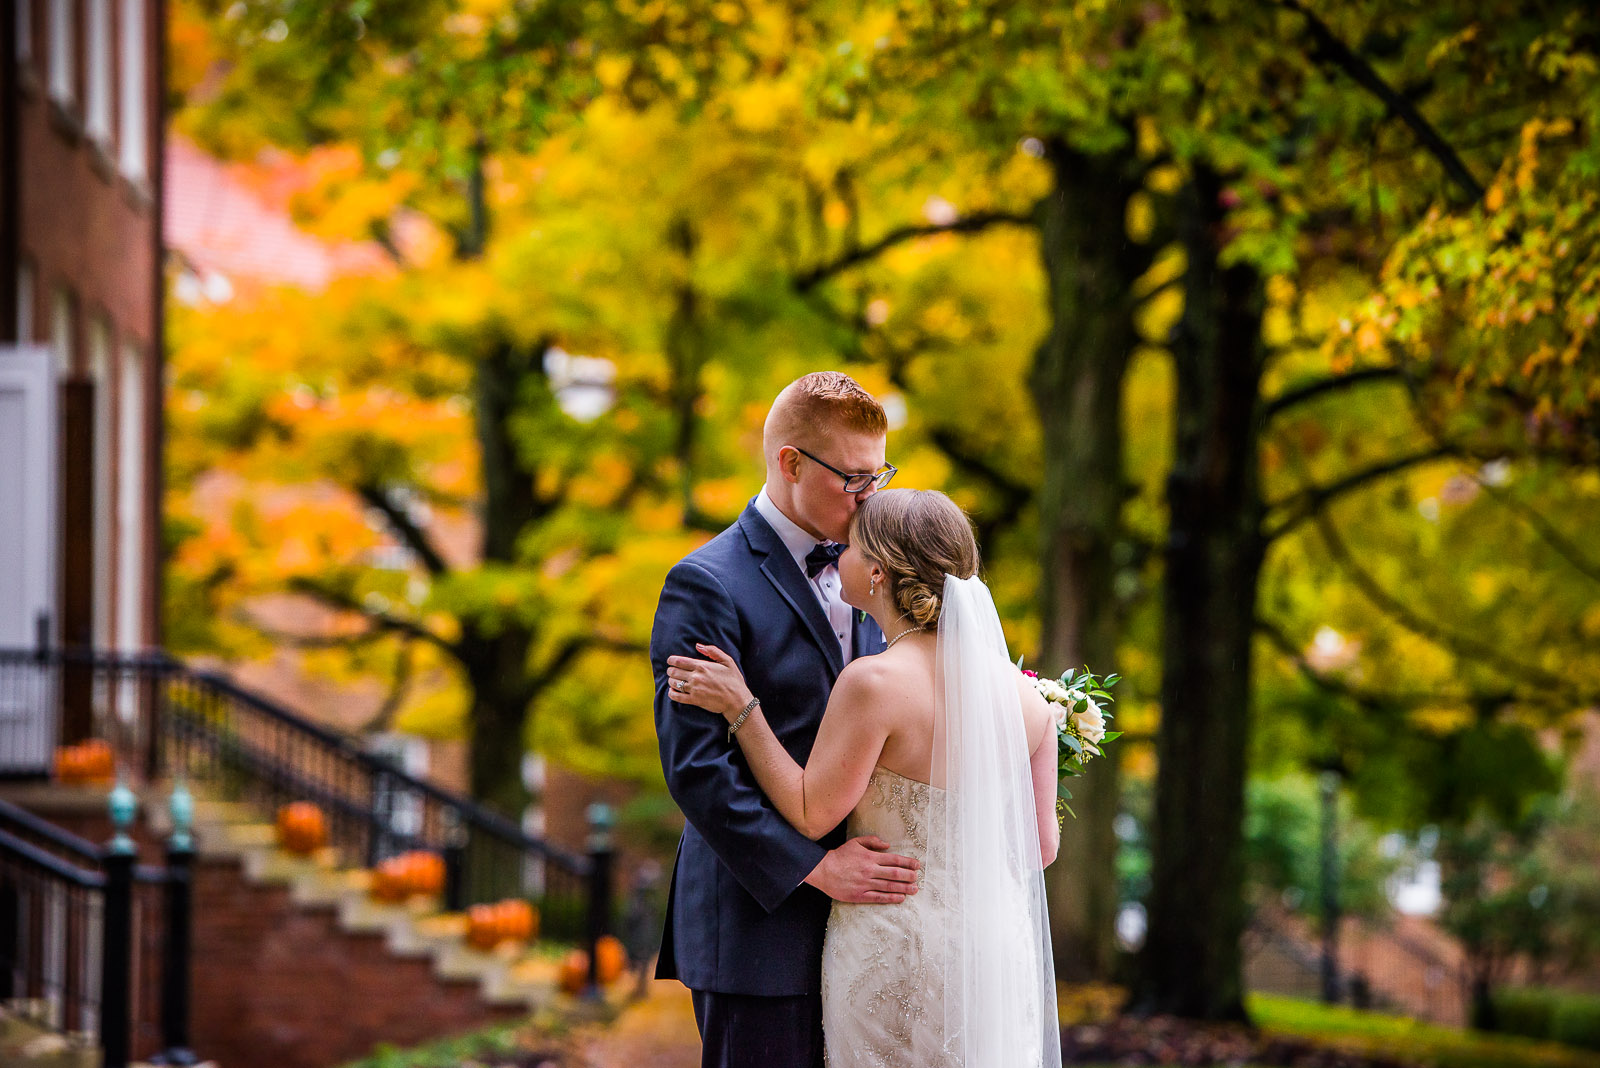 Eric_and_Christy_Photography_Blog_2018_Portraits-49